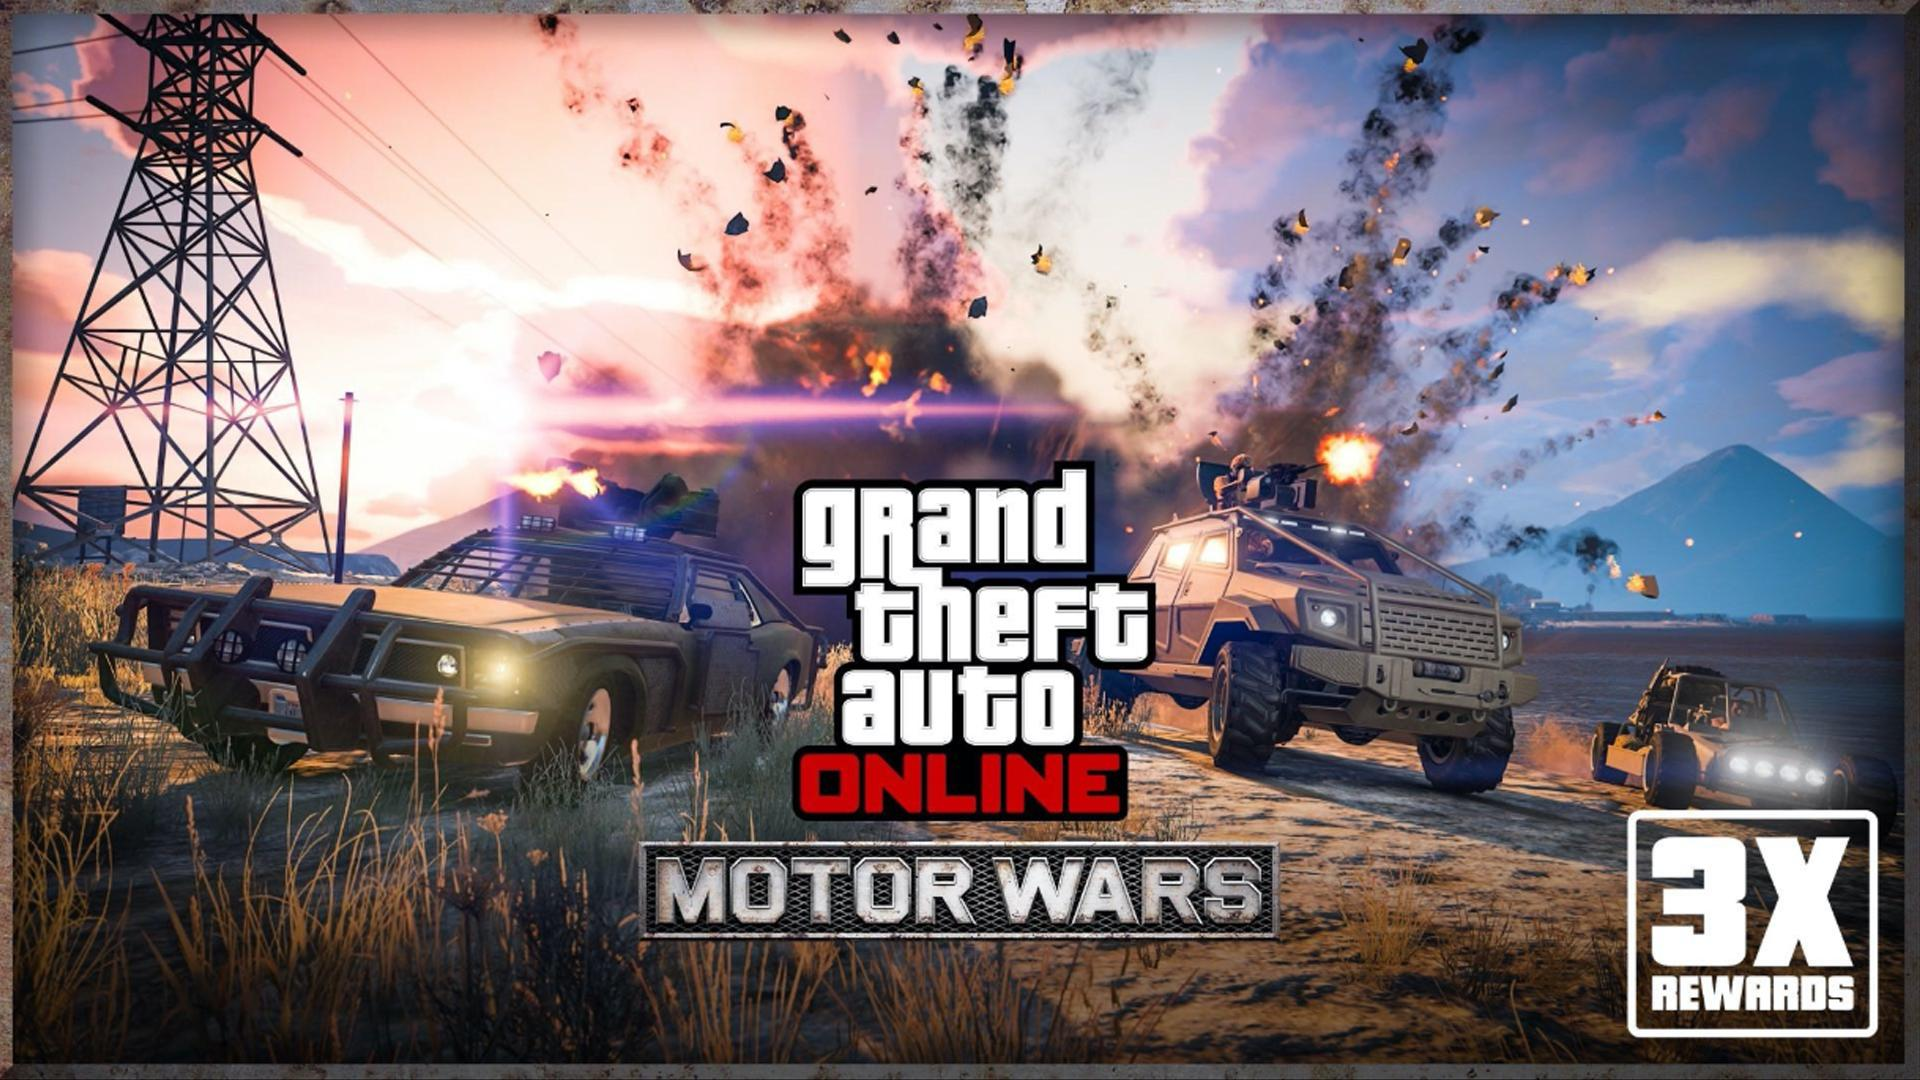 gta-on-the-web:-3x-on-motor-wars-and-2x-on-bunker-provide-missions,-new-podium-auto-&-a-lot-more